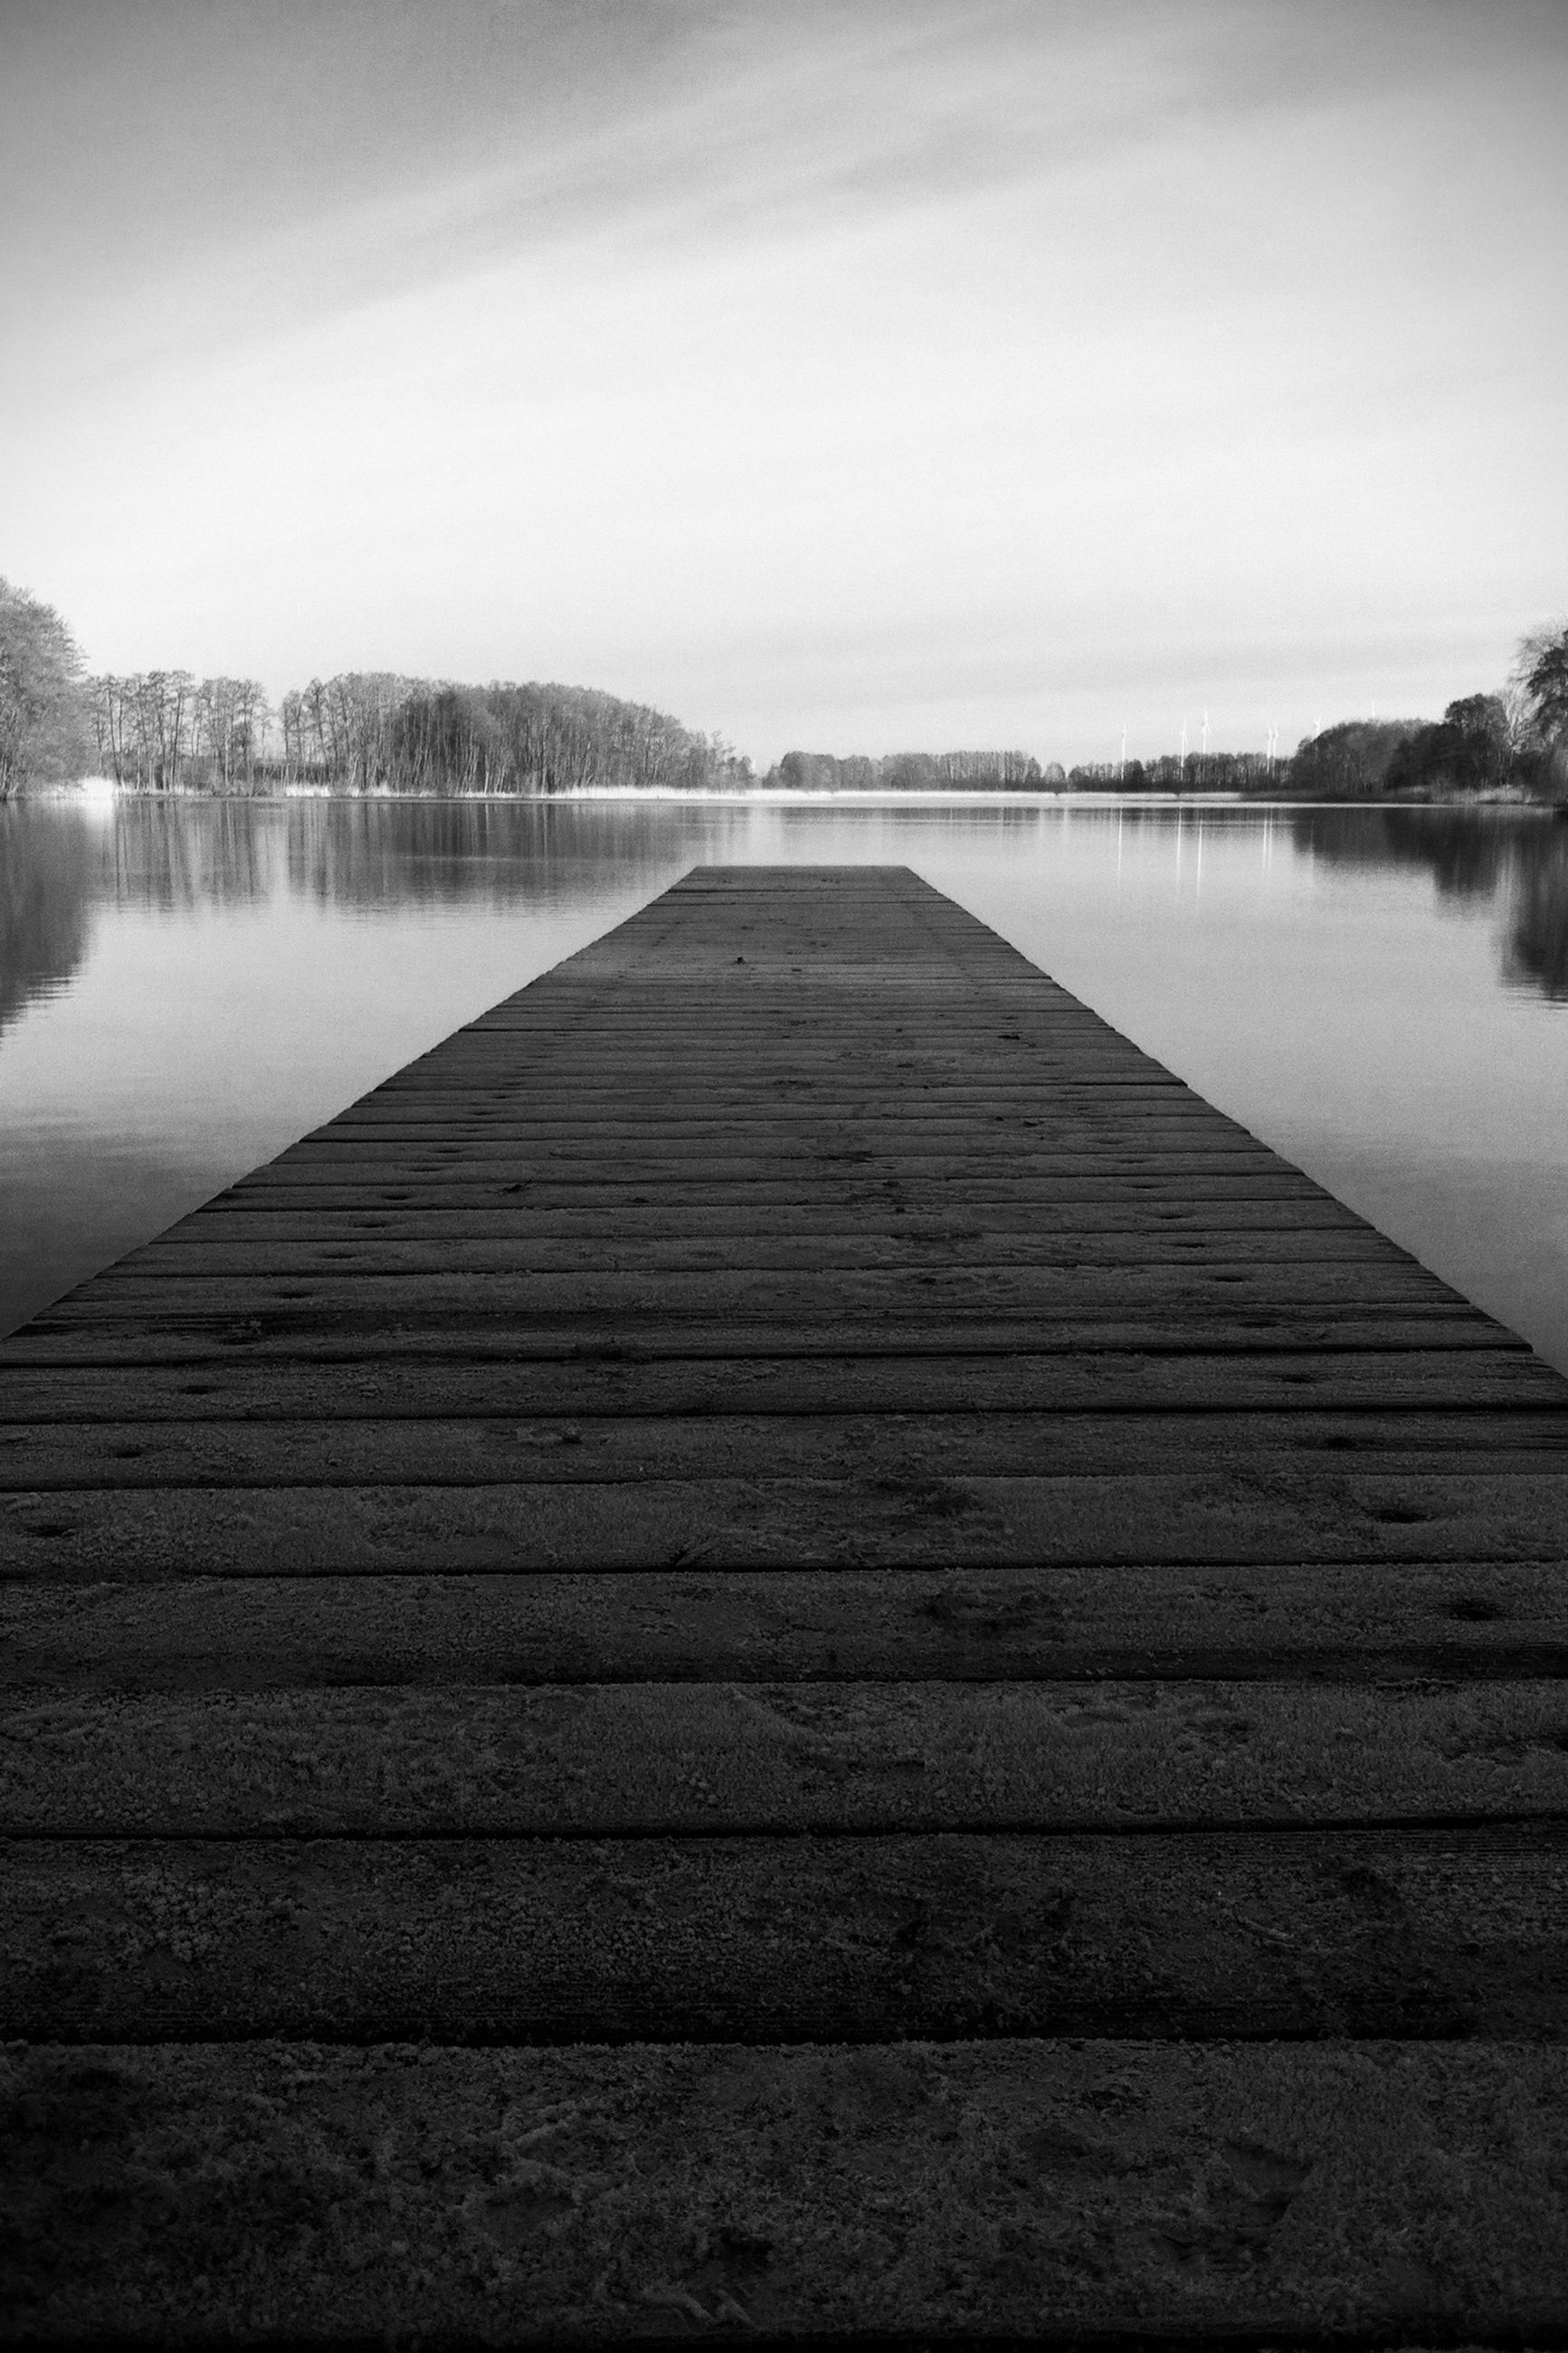 water, lake, pier, the way forward, sky, reflection, tranquil scene, tranquility, wood - material, jetty, diminishing perspective, river, built structure, nature, scenics, boardwalk, beauty in nature, wood, no people, day